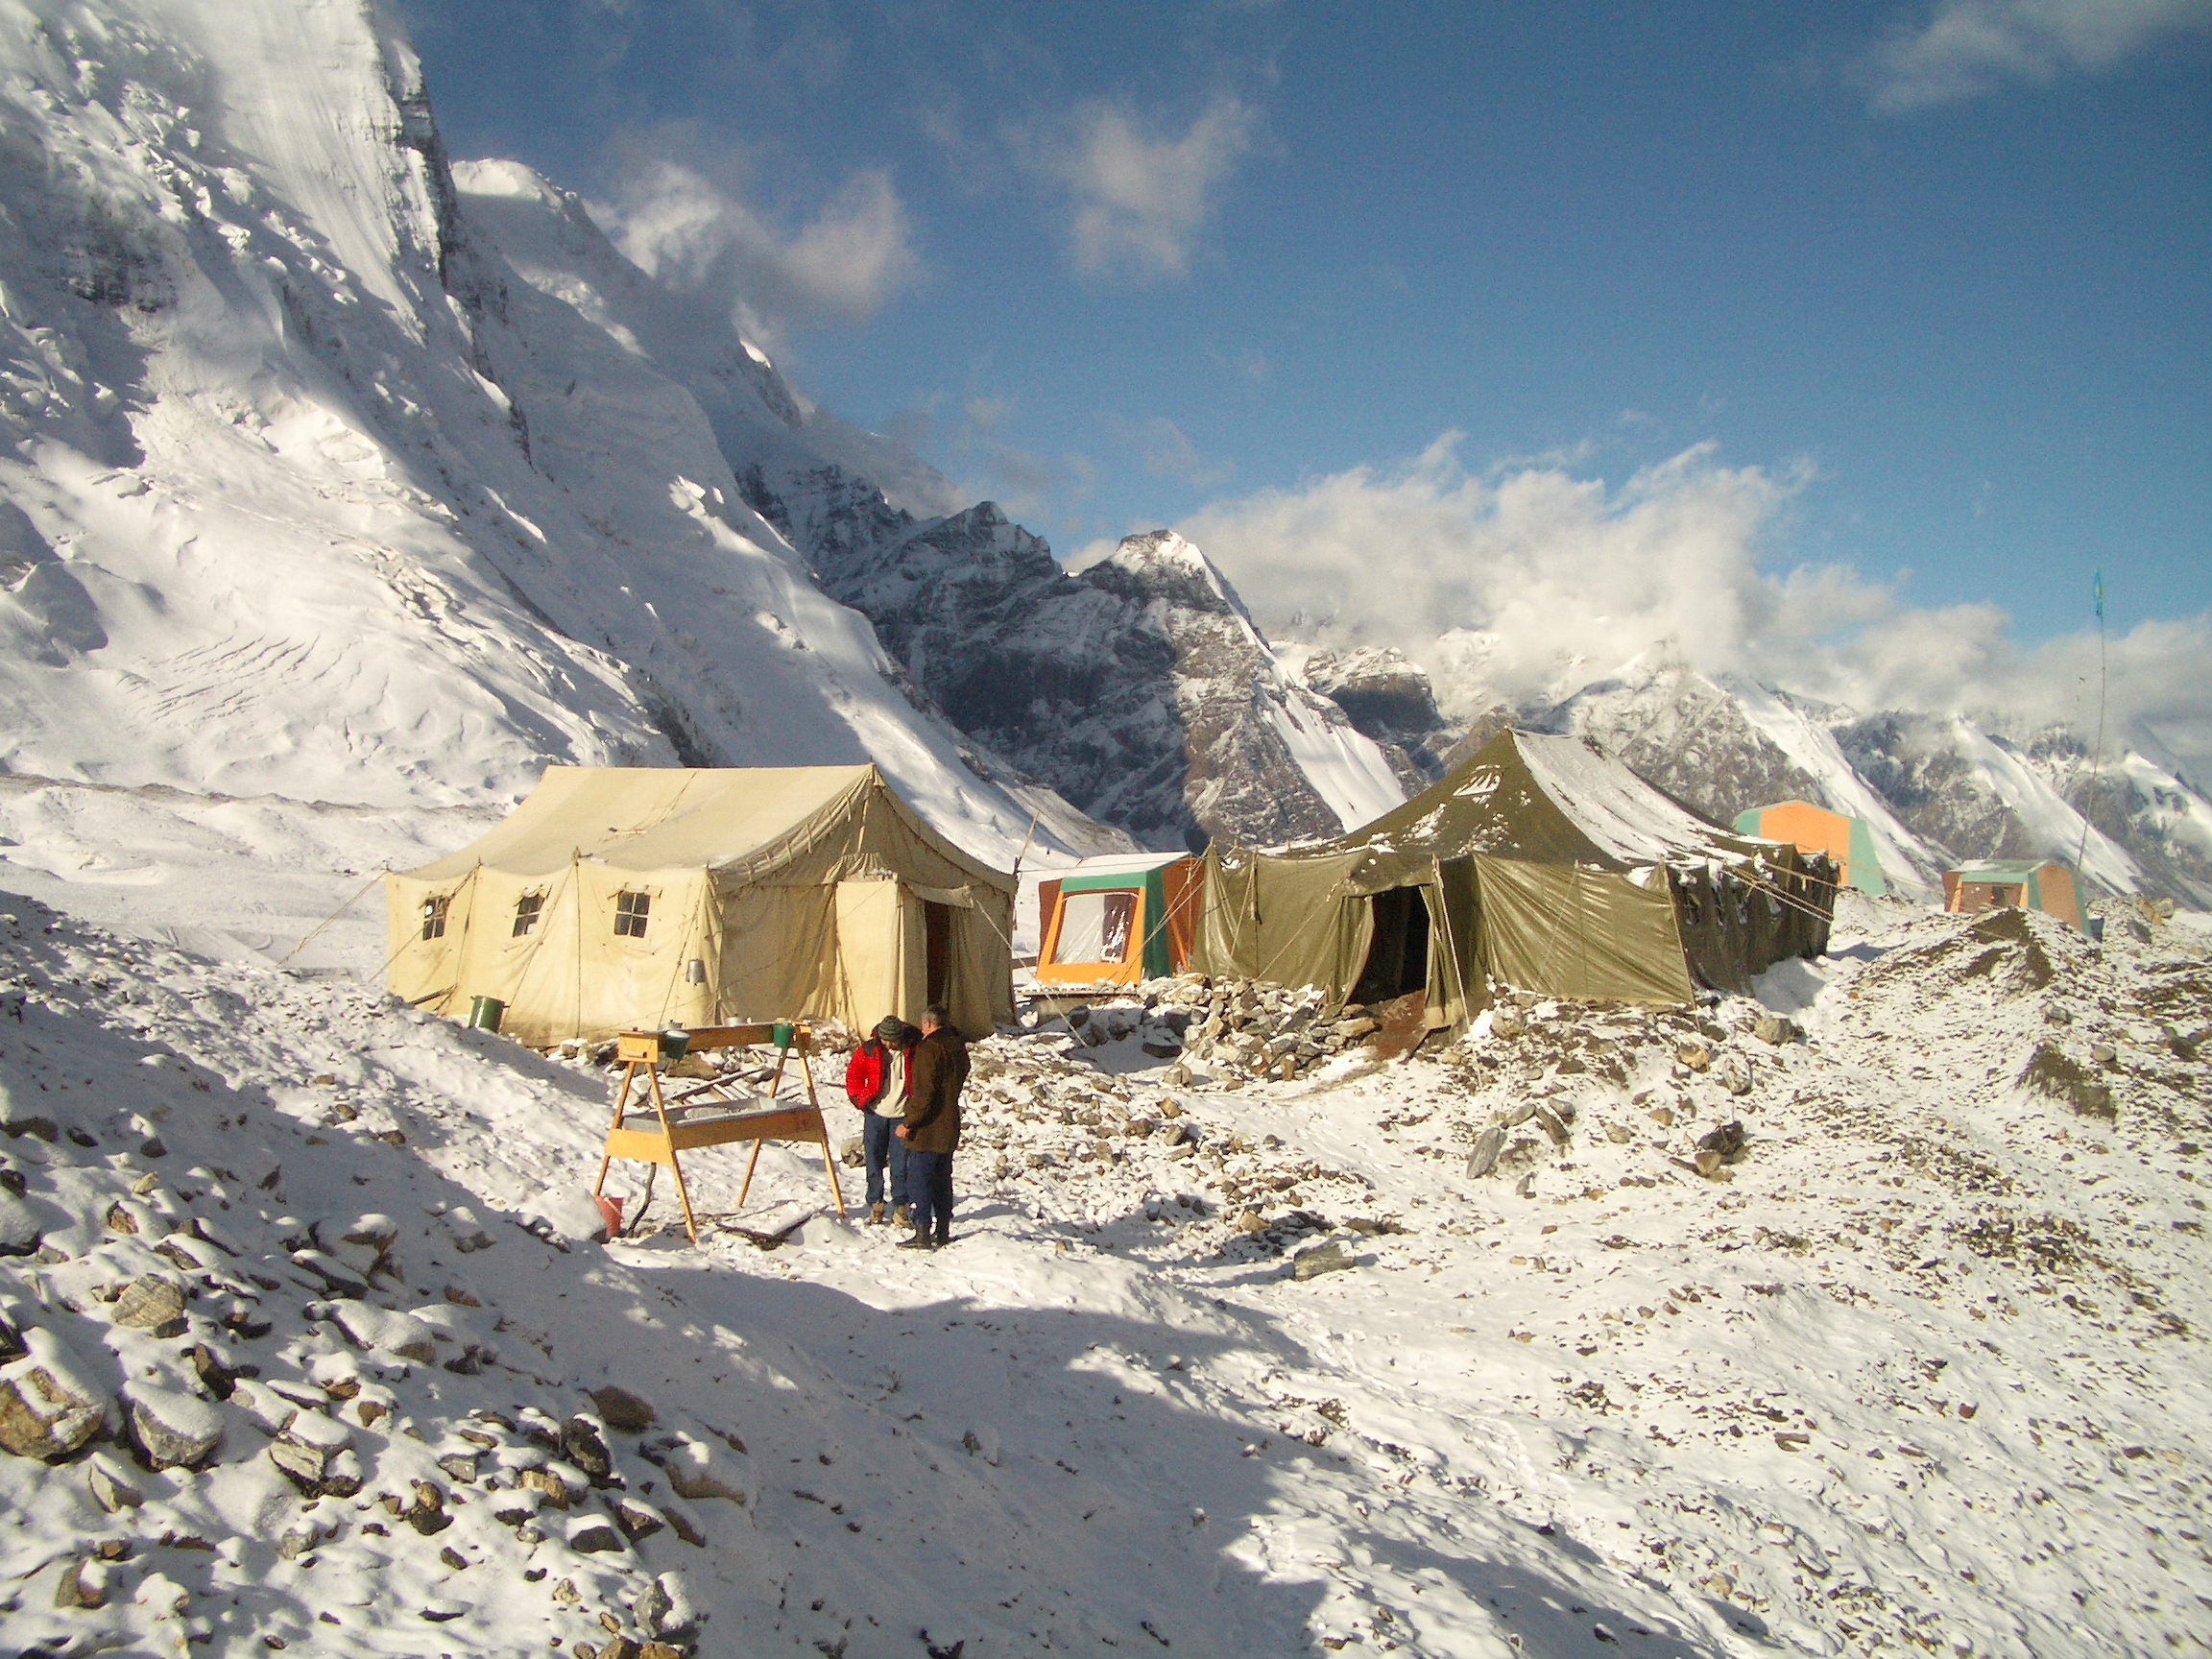 The setup at basecamp, Khan Tengri